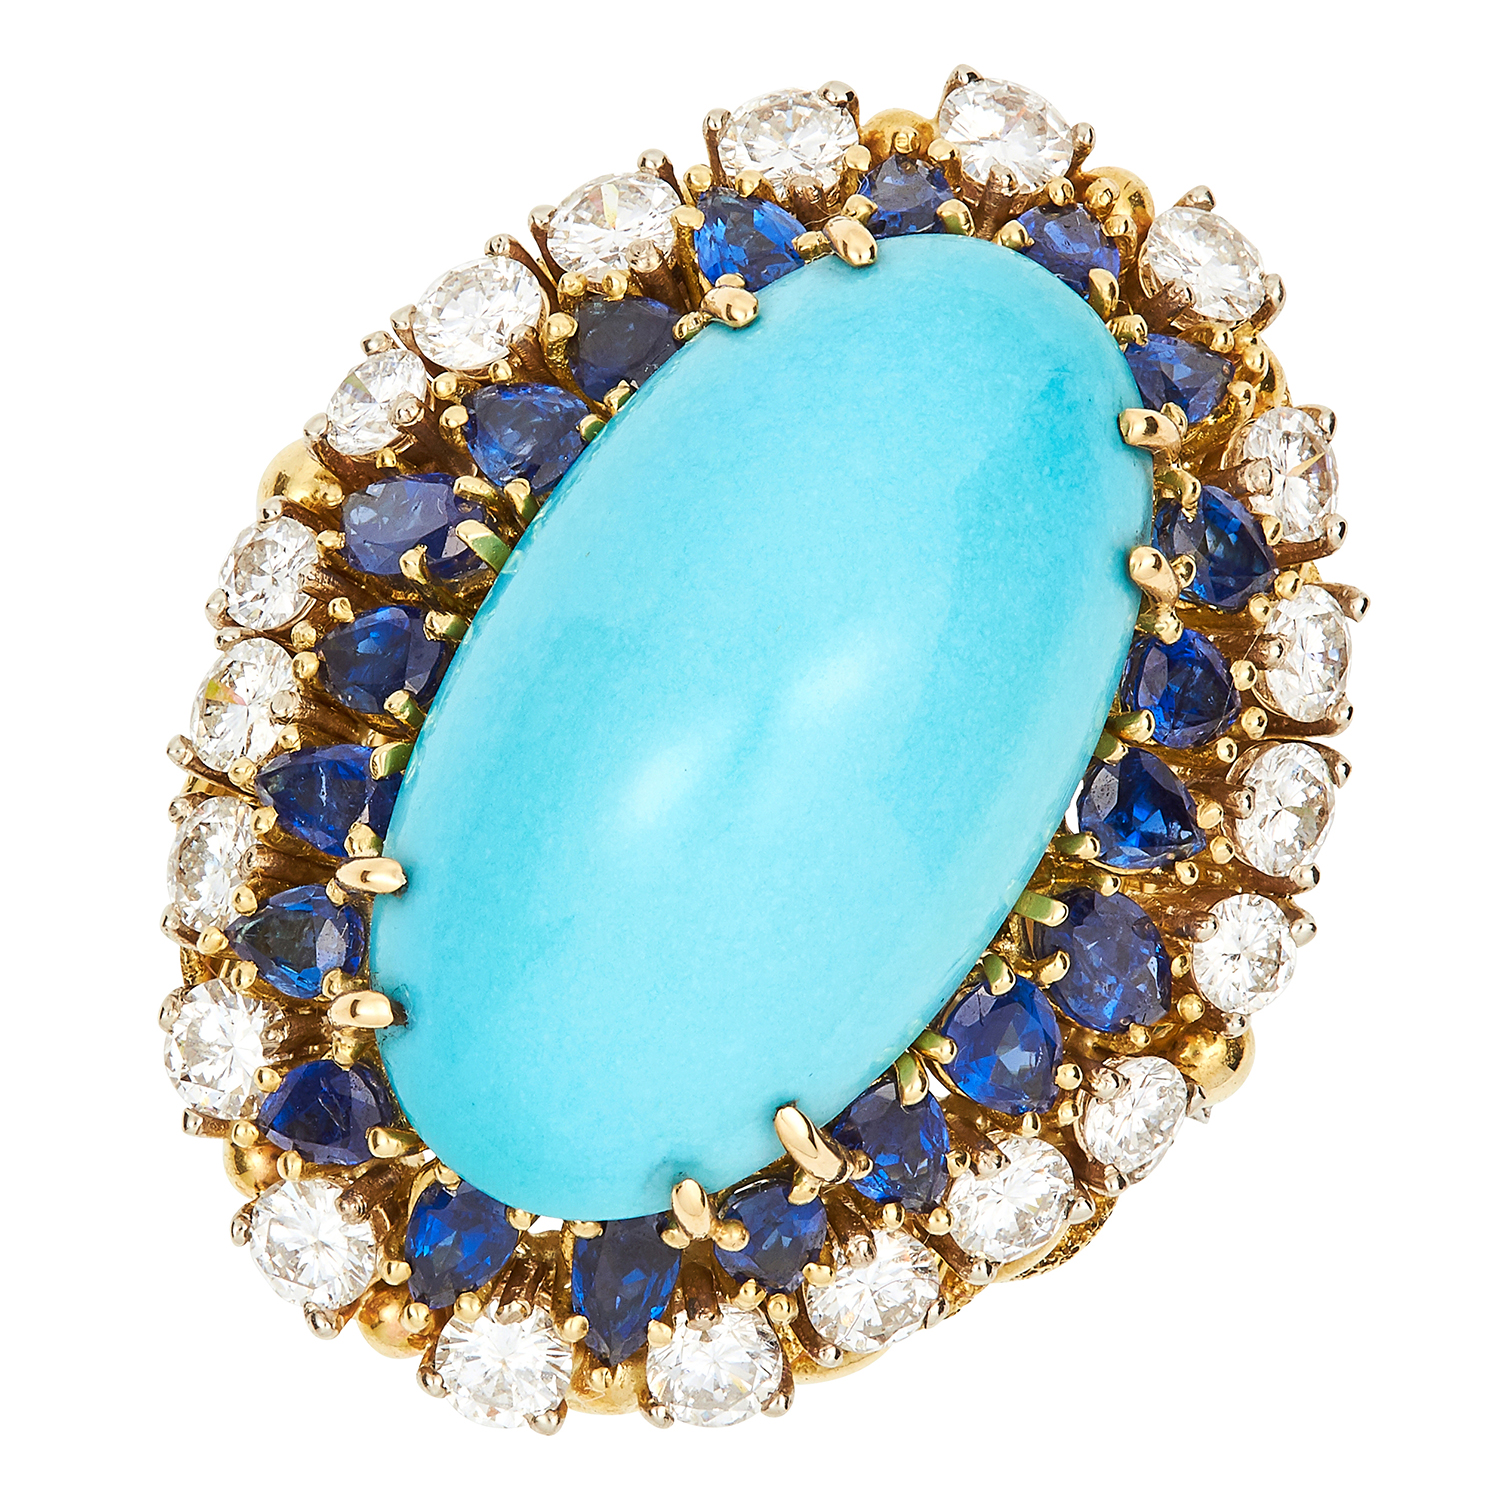 Los 33 - VINTAGE TURQUOISE, DIAMOND AND SAPPHIRE RING CIRCA 1970 set with an oval turquoise cabochon of 25.70